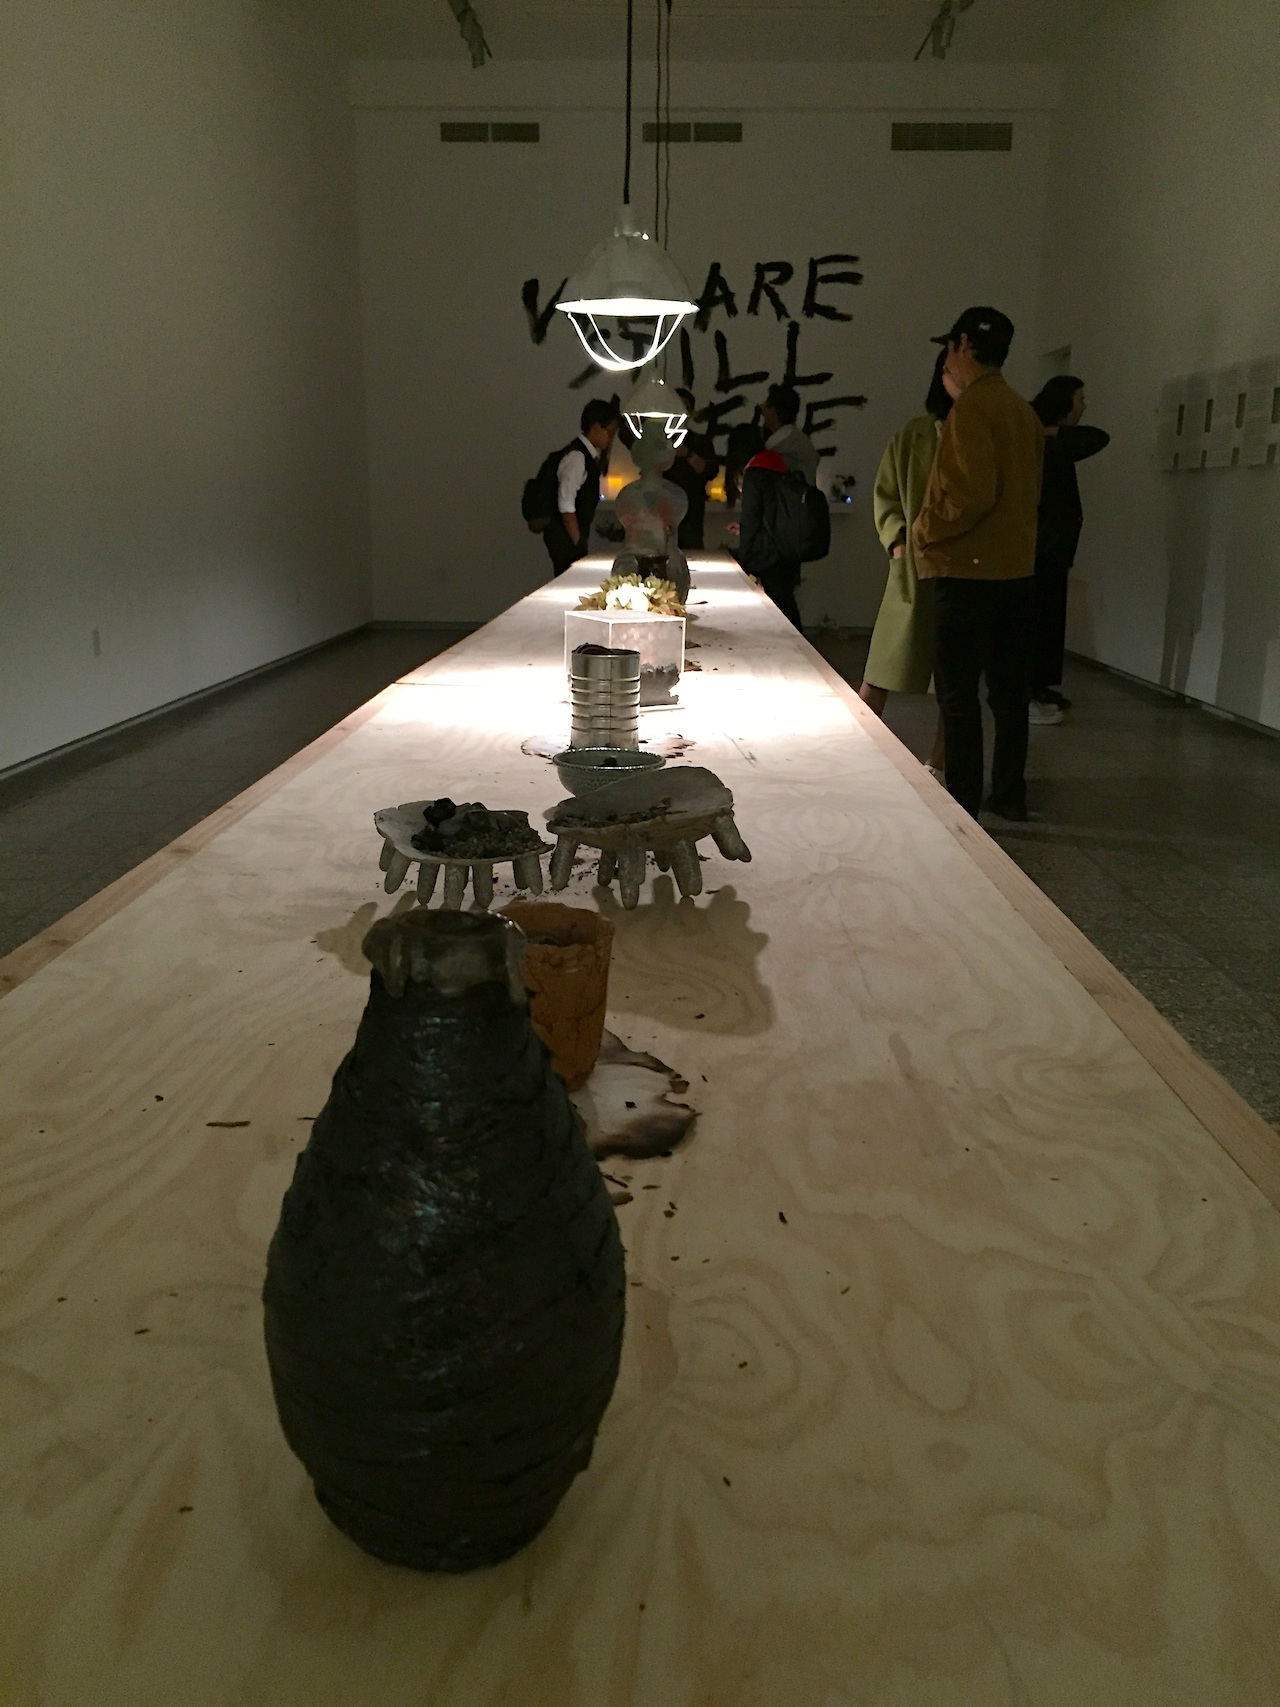 """""""We Are Still Here"""" at the USC Fine Arts Lindhurst Gallery, Nov. 12, 2015"""